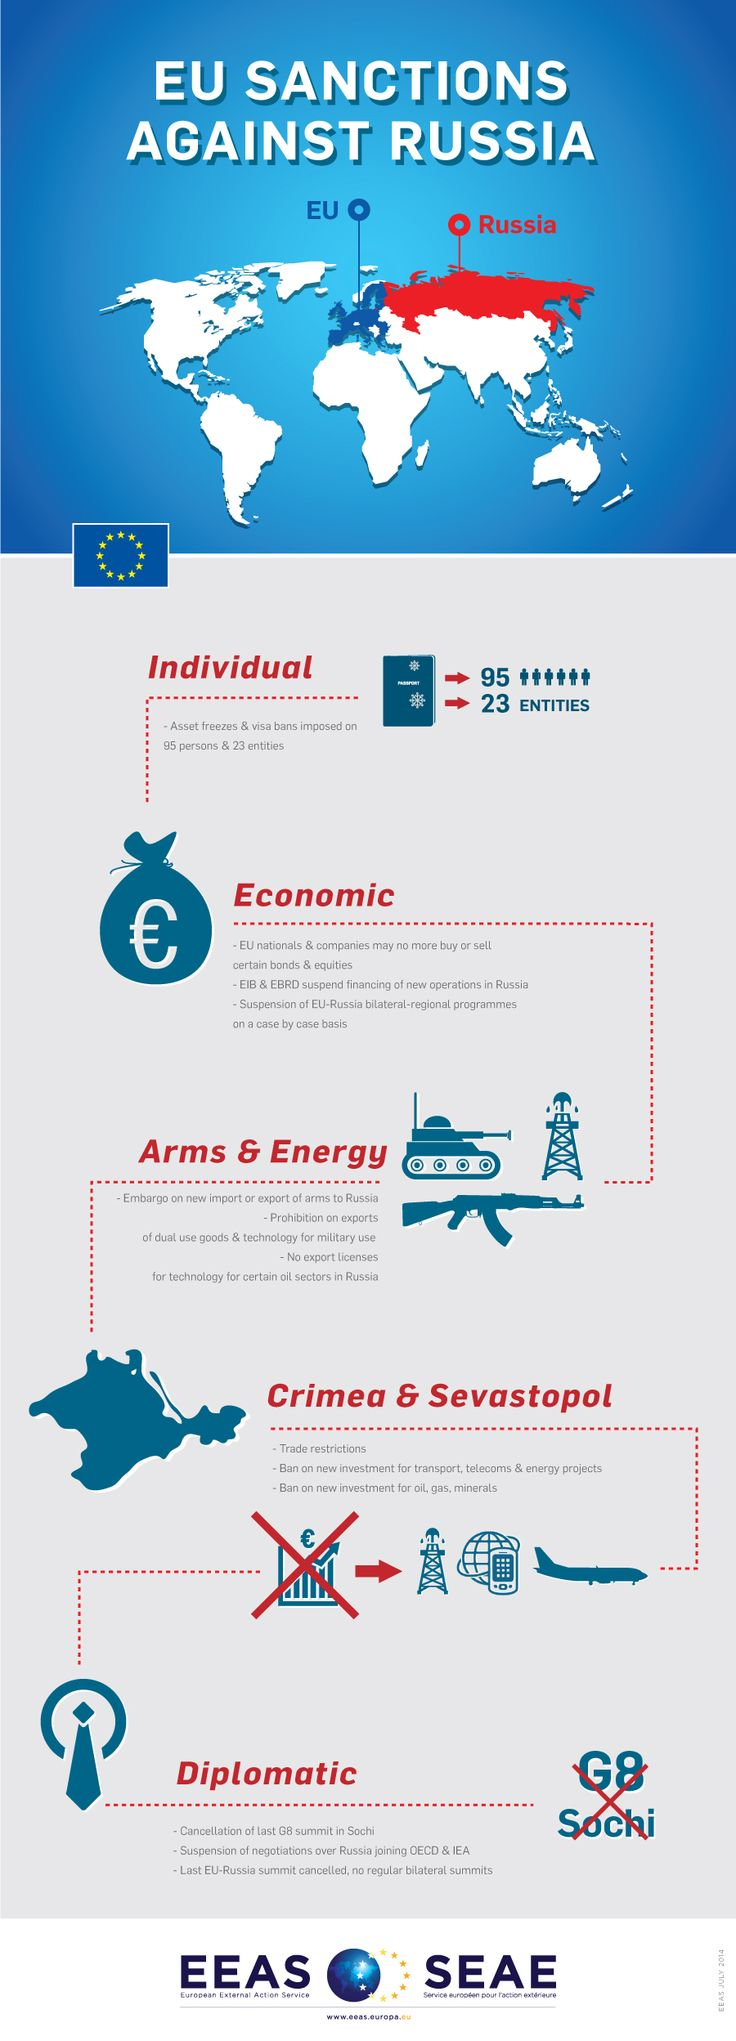 #EU sanctions against #Russia | Check out our new infographic highlighting EU sanctions in view of the situation in Eastern #Ukraine and the illegal annexation of #Crimea. Full details in the background note: http://europa.eu/!NP48up, also read our Fact Sheet on EU-Ukraine relations (updated): http://europa.eu/!yy88Gy #EEAS #EuropeanUnion